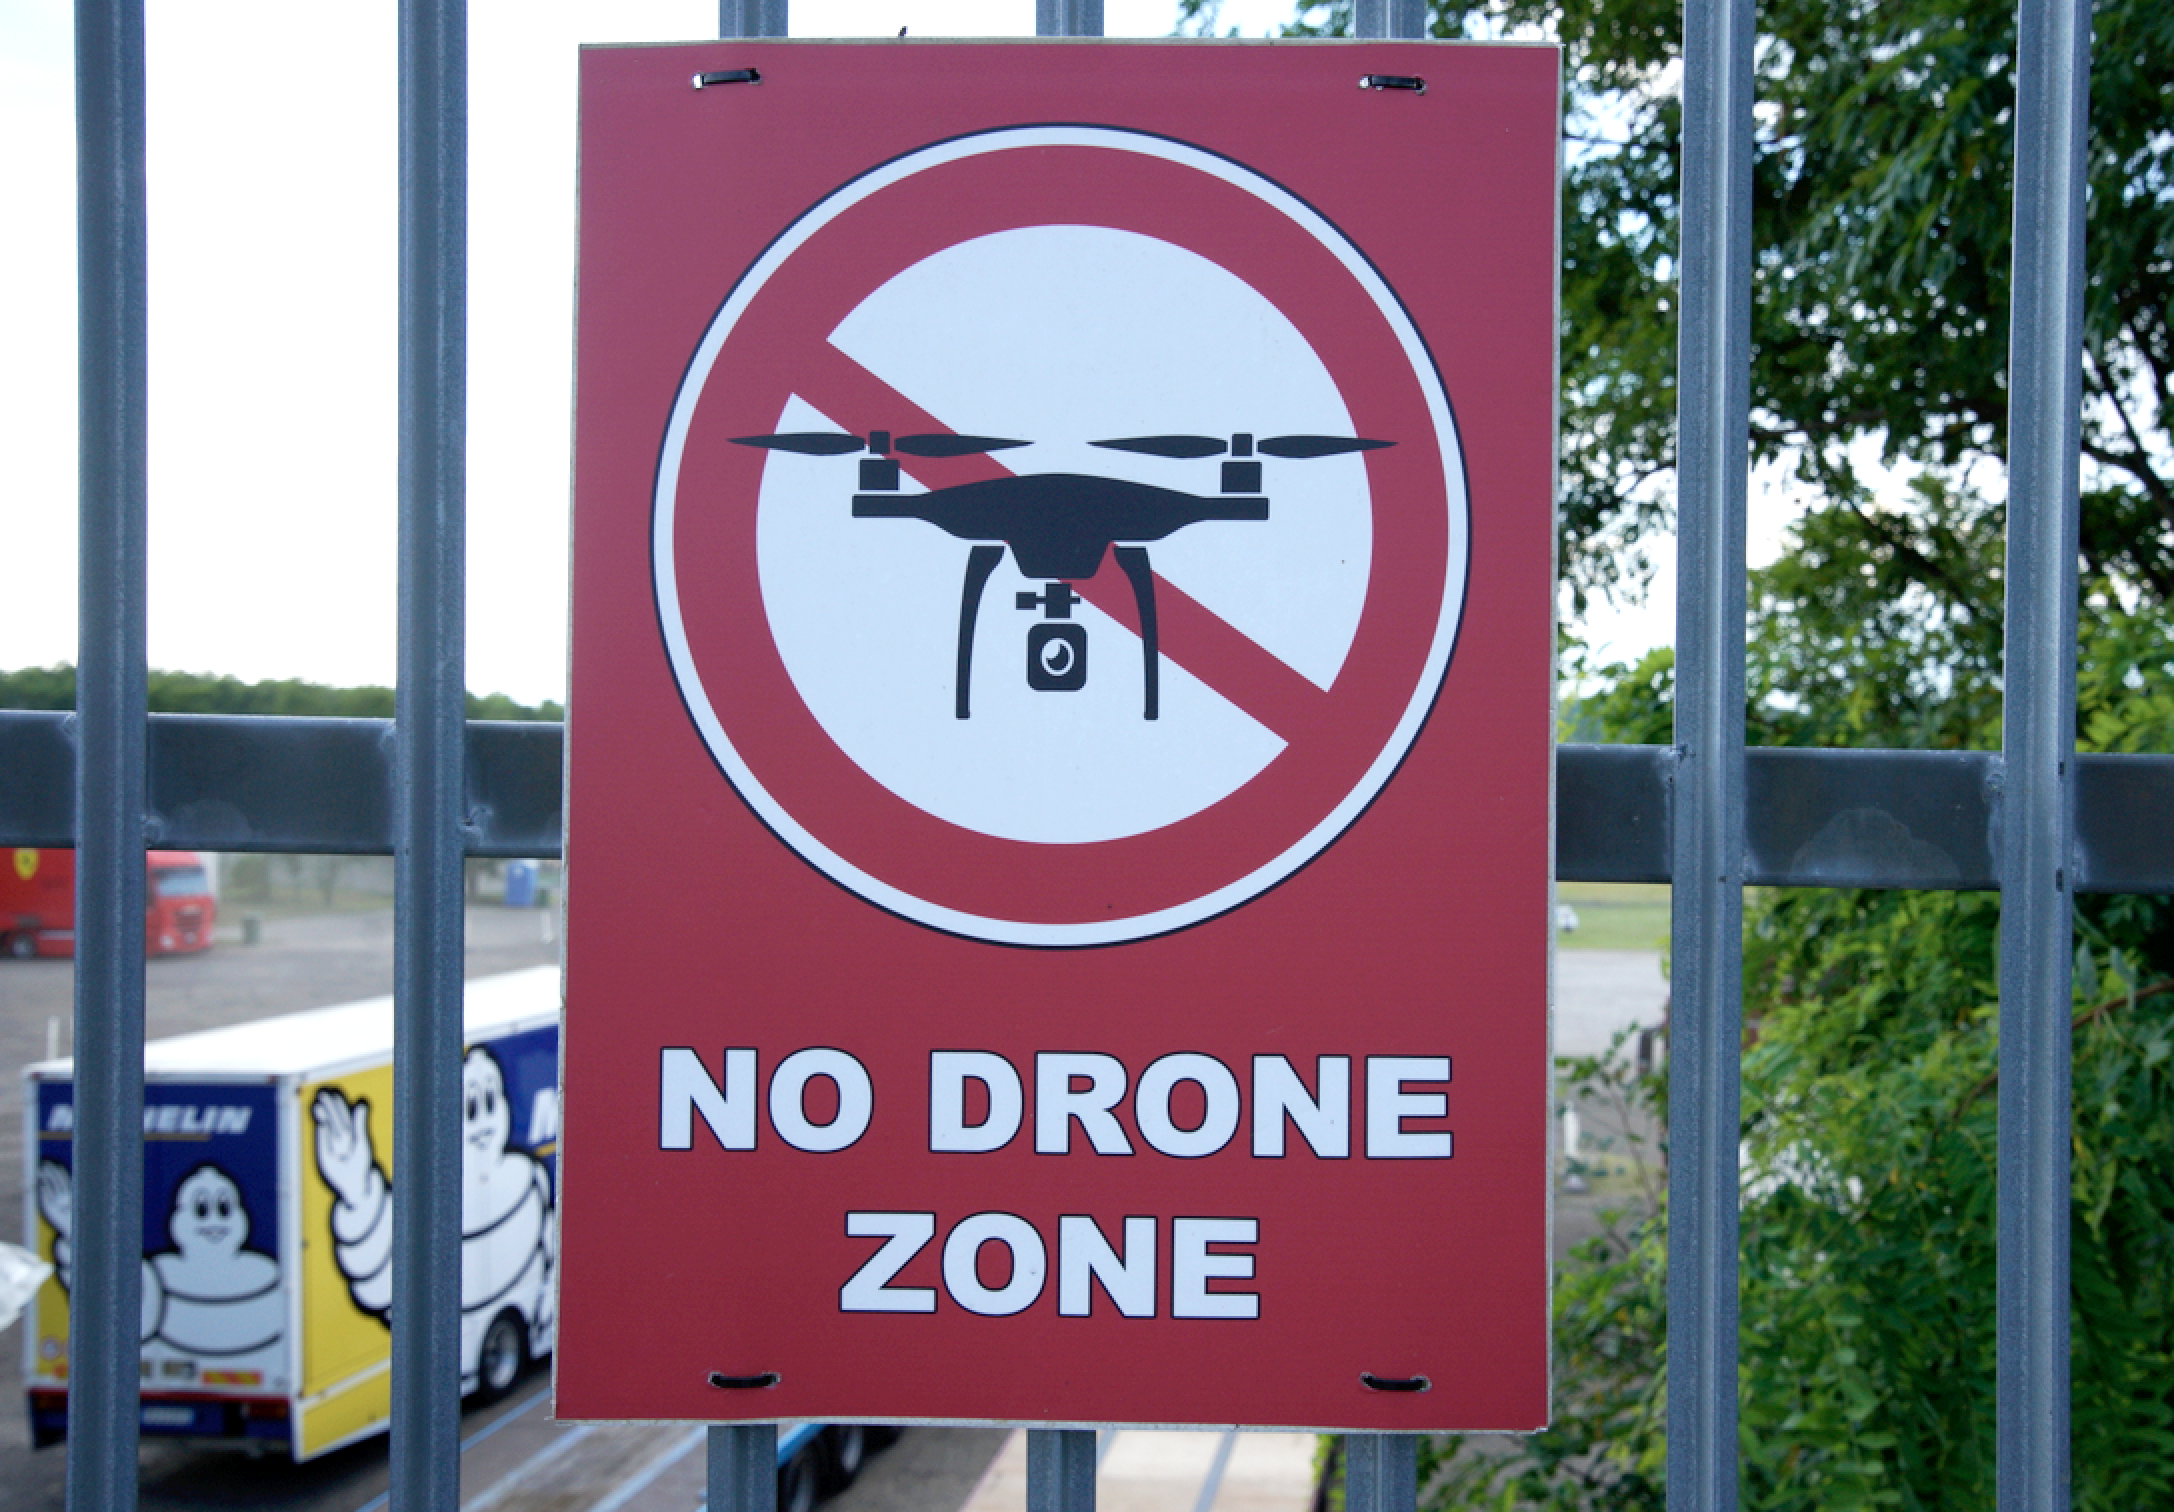 hungaroring-no-drone-zone-tabla.png